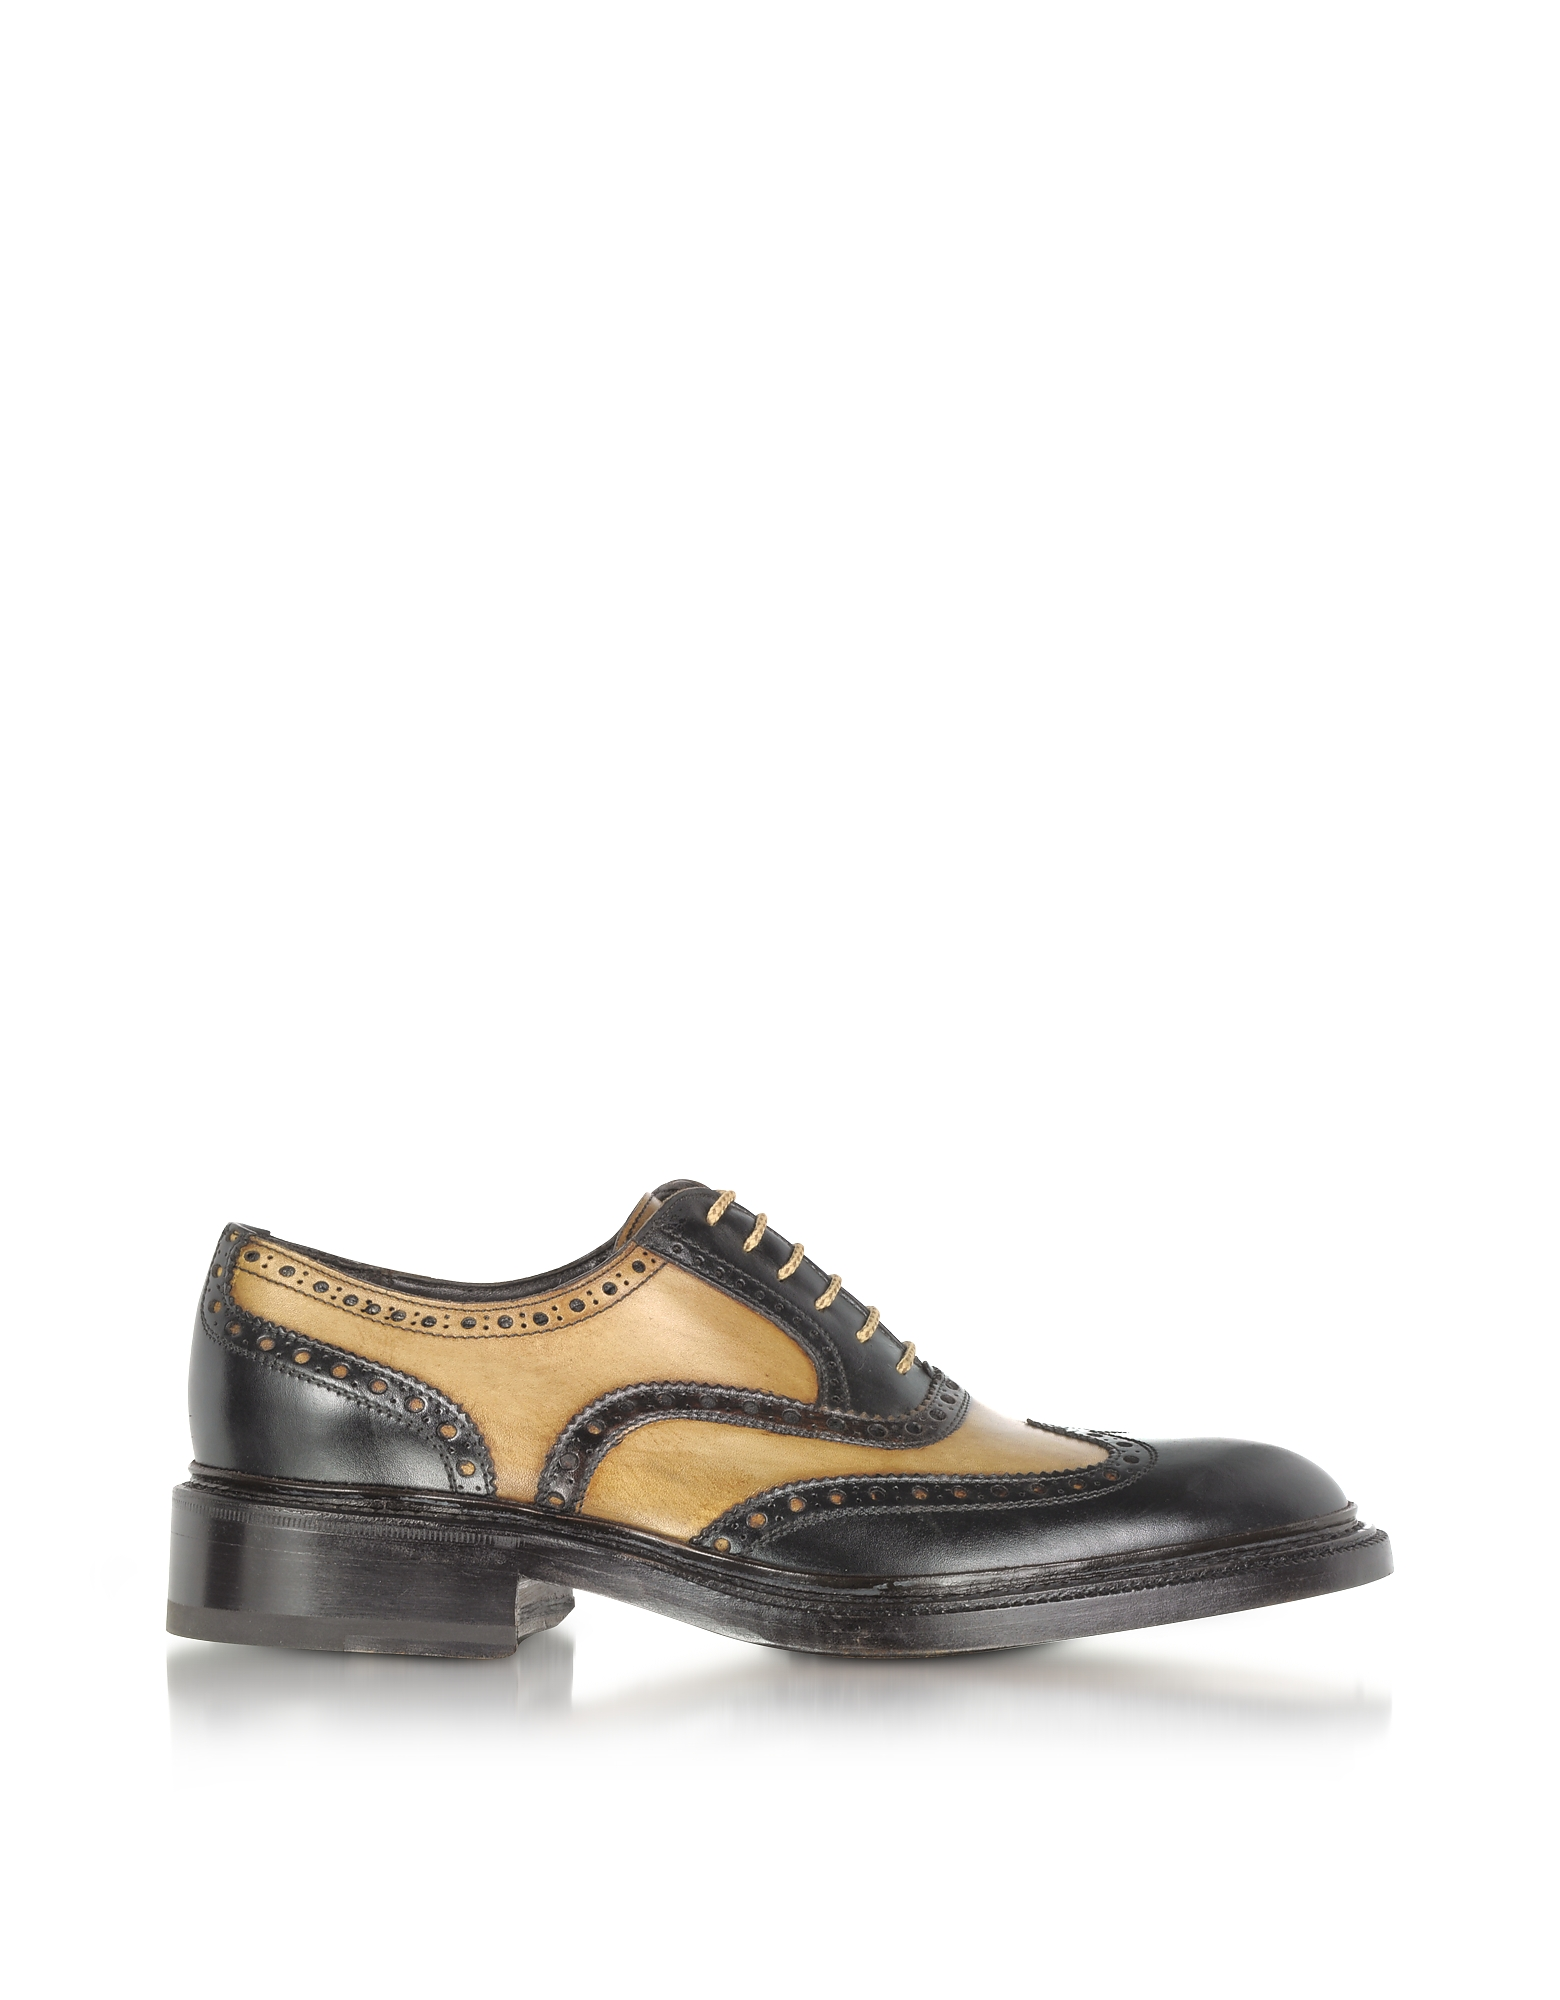 Forzieri Shoes, Italian Handcrafted Two-tone Wingtip Oxford Shoes